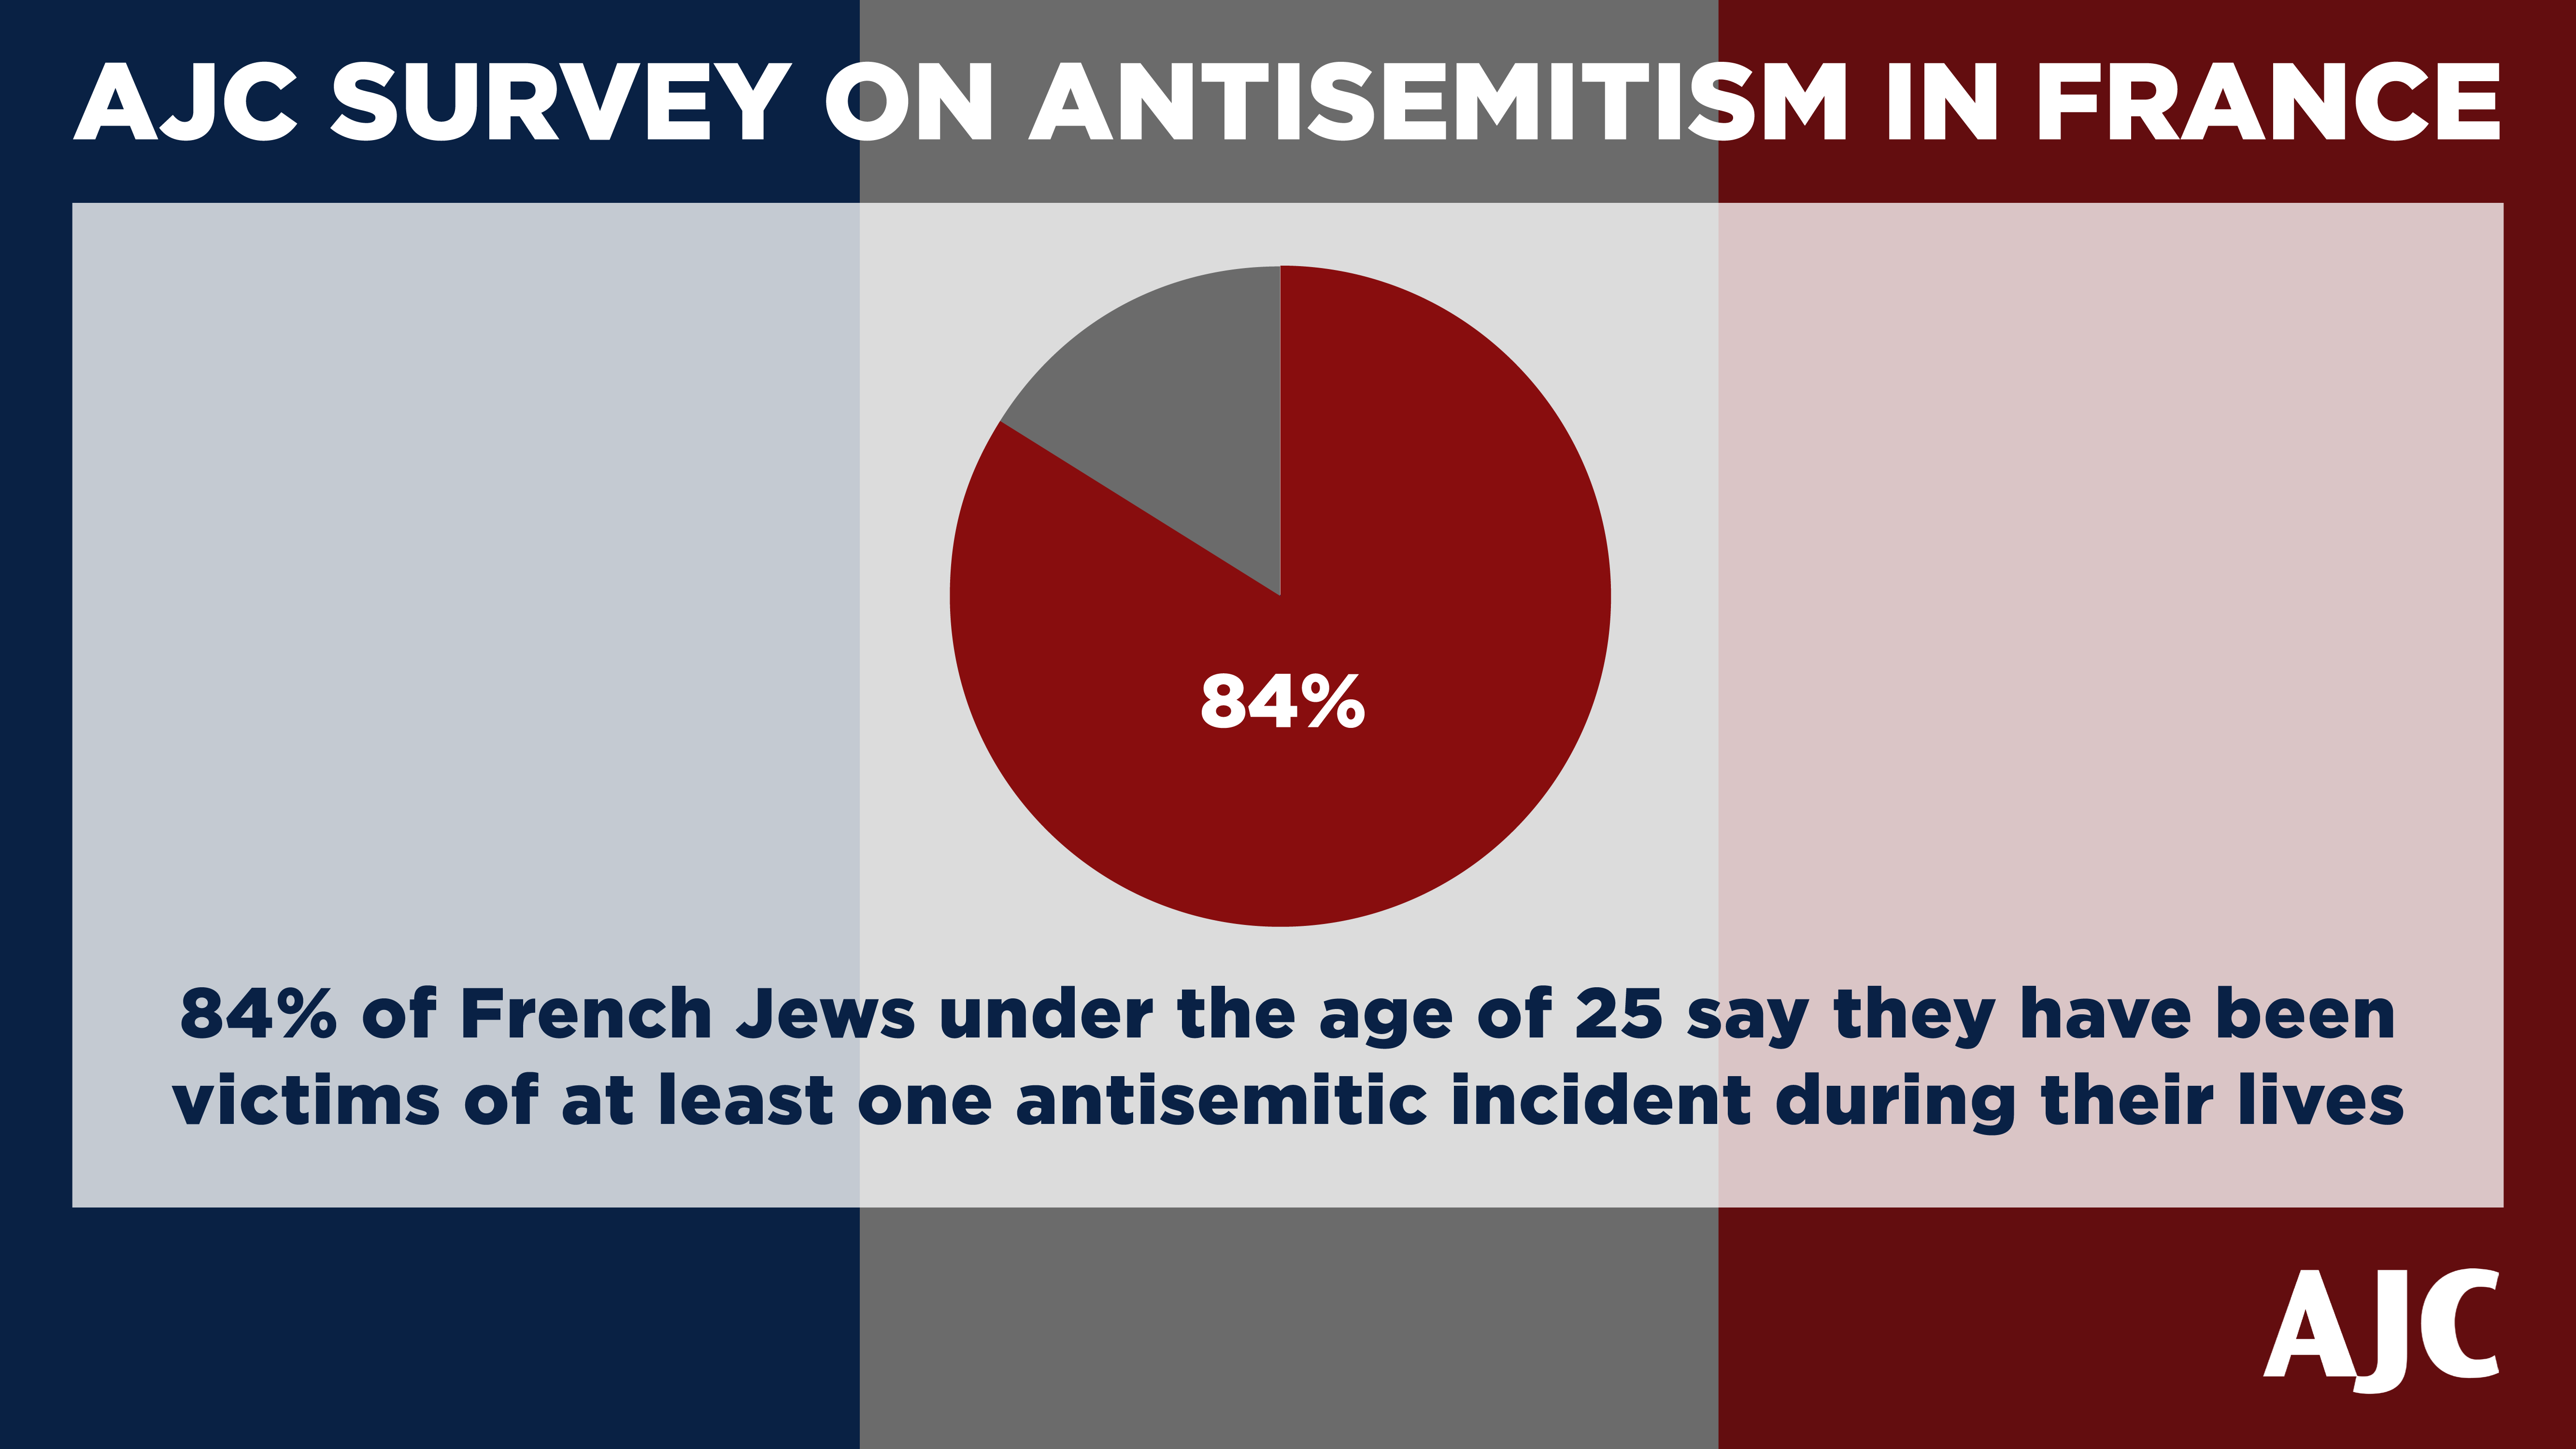 AJC Paris Survey 84 Percent of Young Jews in France have been victims of antisemitism